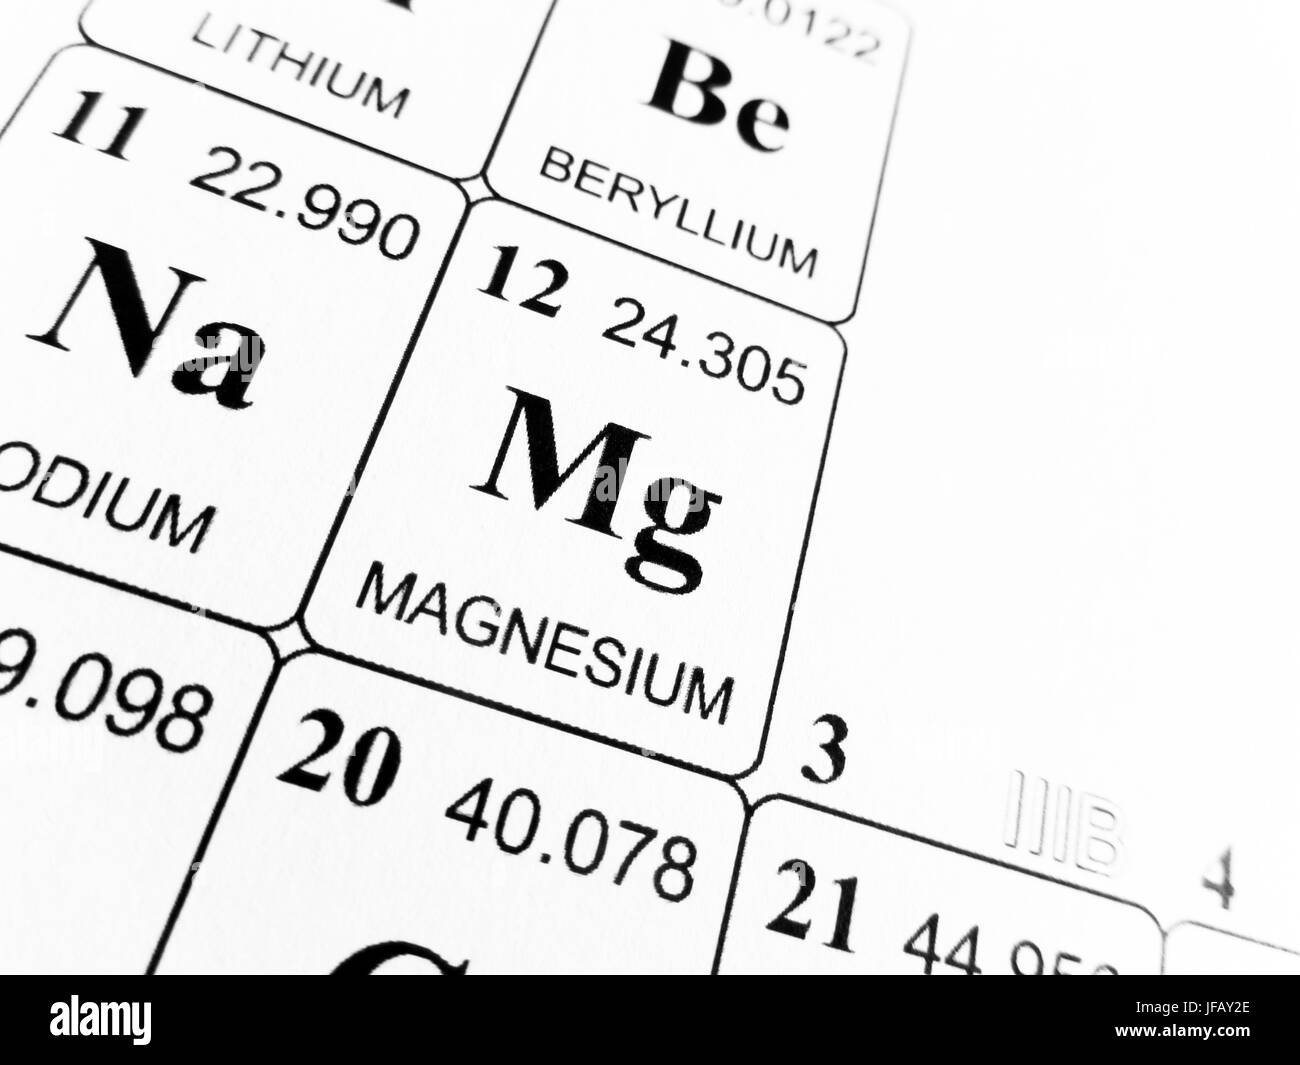 Magnesium on the periodic table of the elements stock photo magnesium on the periodic table of the elements urtaz Images